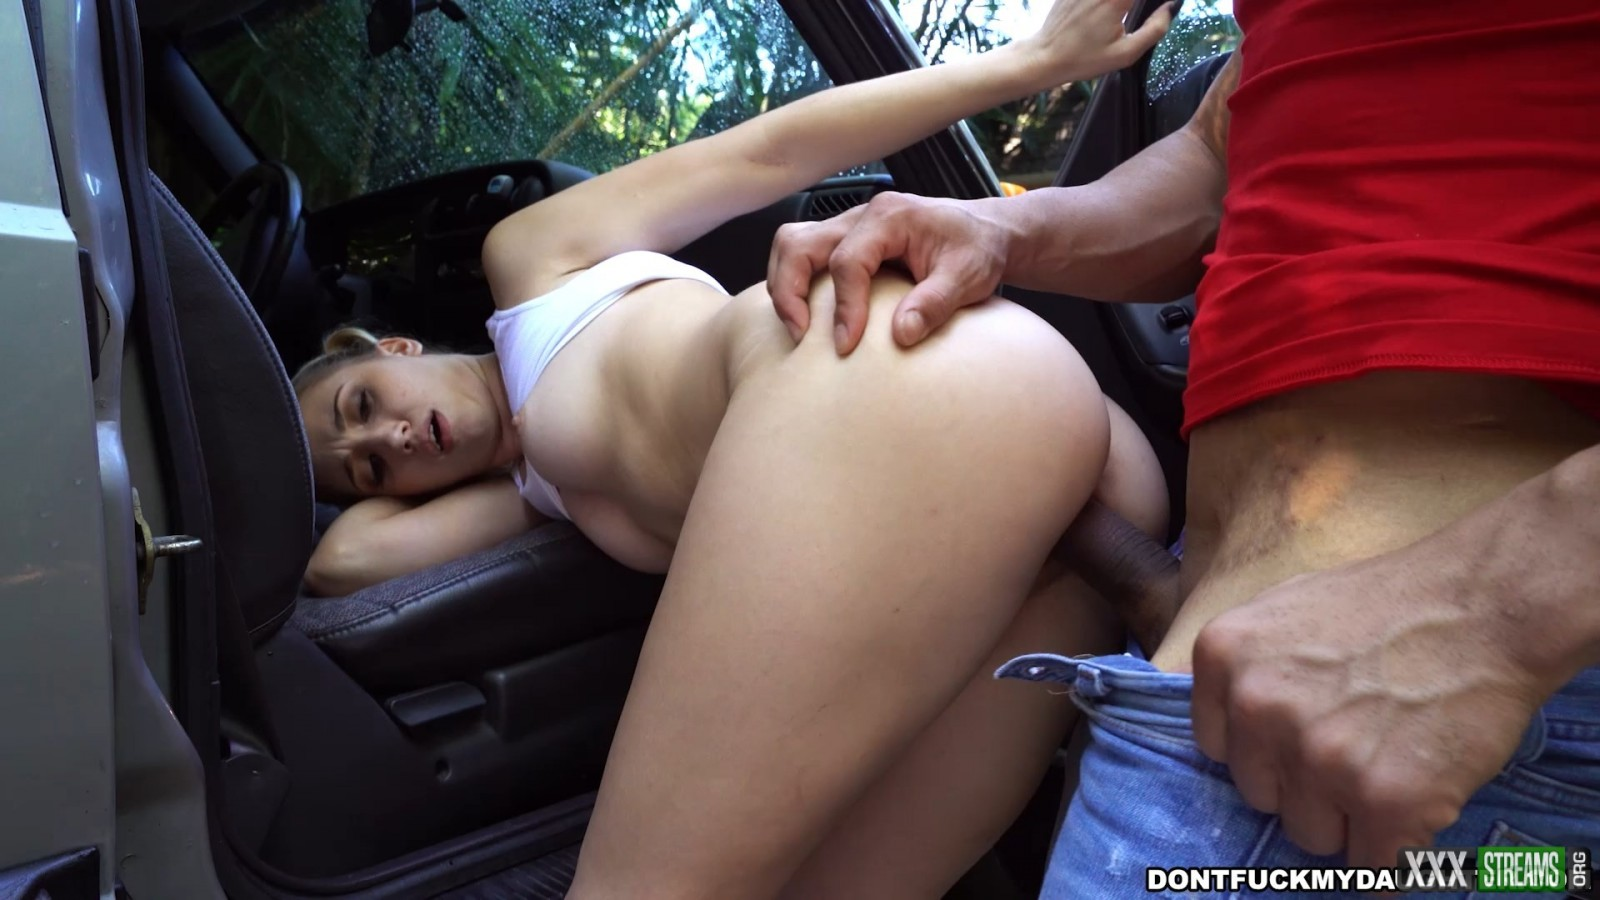 Sierra Nicole - Naughty Sierra Nicole Fucks The Carwash man (Dontfuckmydaughter)